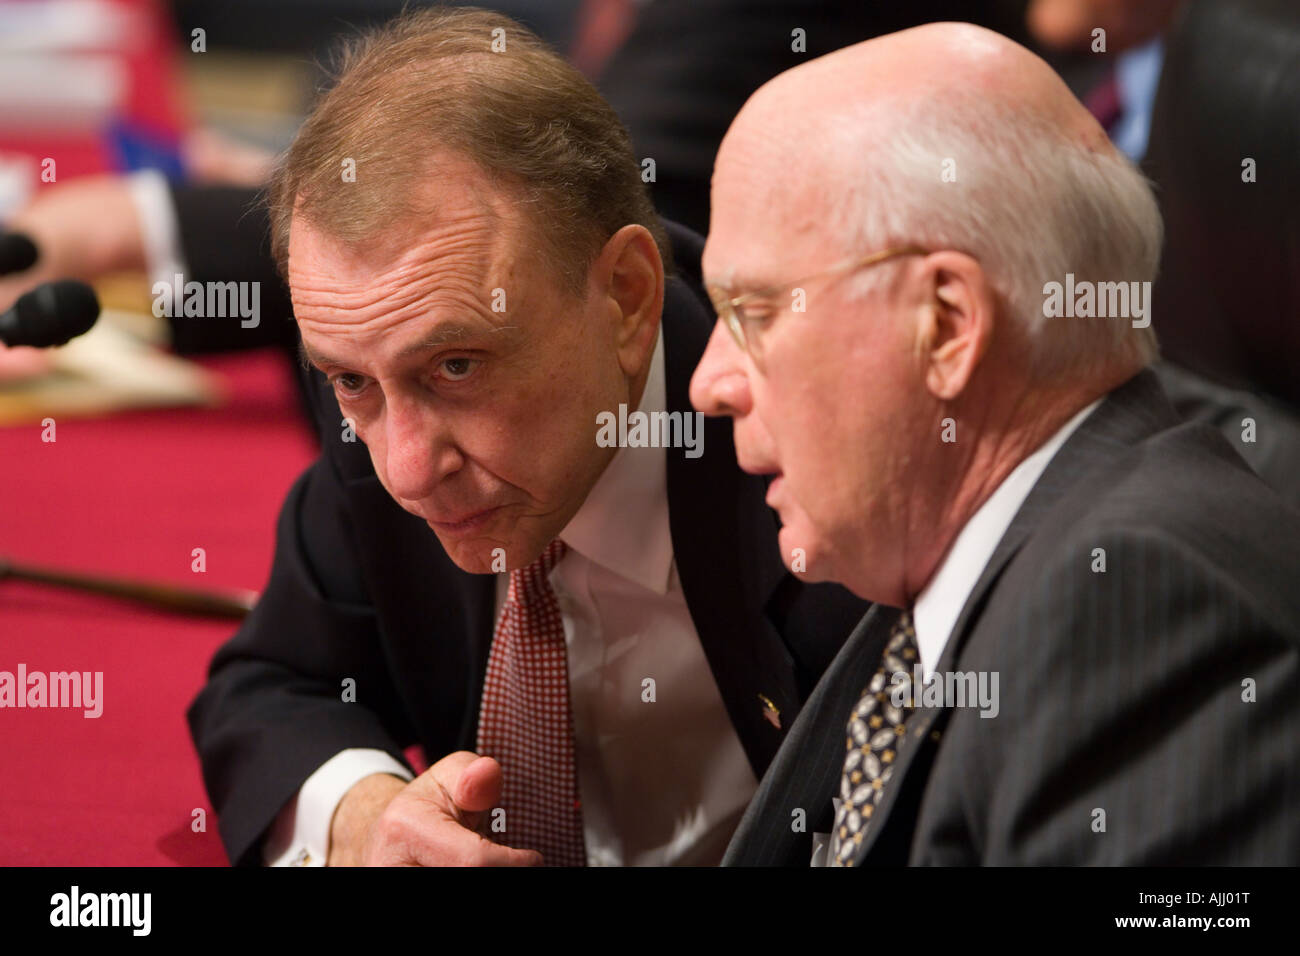 WASHINGTON DC USA U.S. Senators Arlen Specter R-PA, left, and Patrick Leahy D-VT, Senate Judiciary Committee Stock Photo